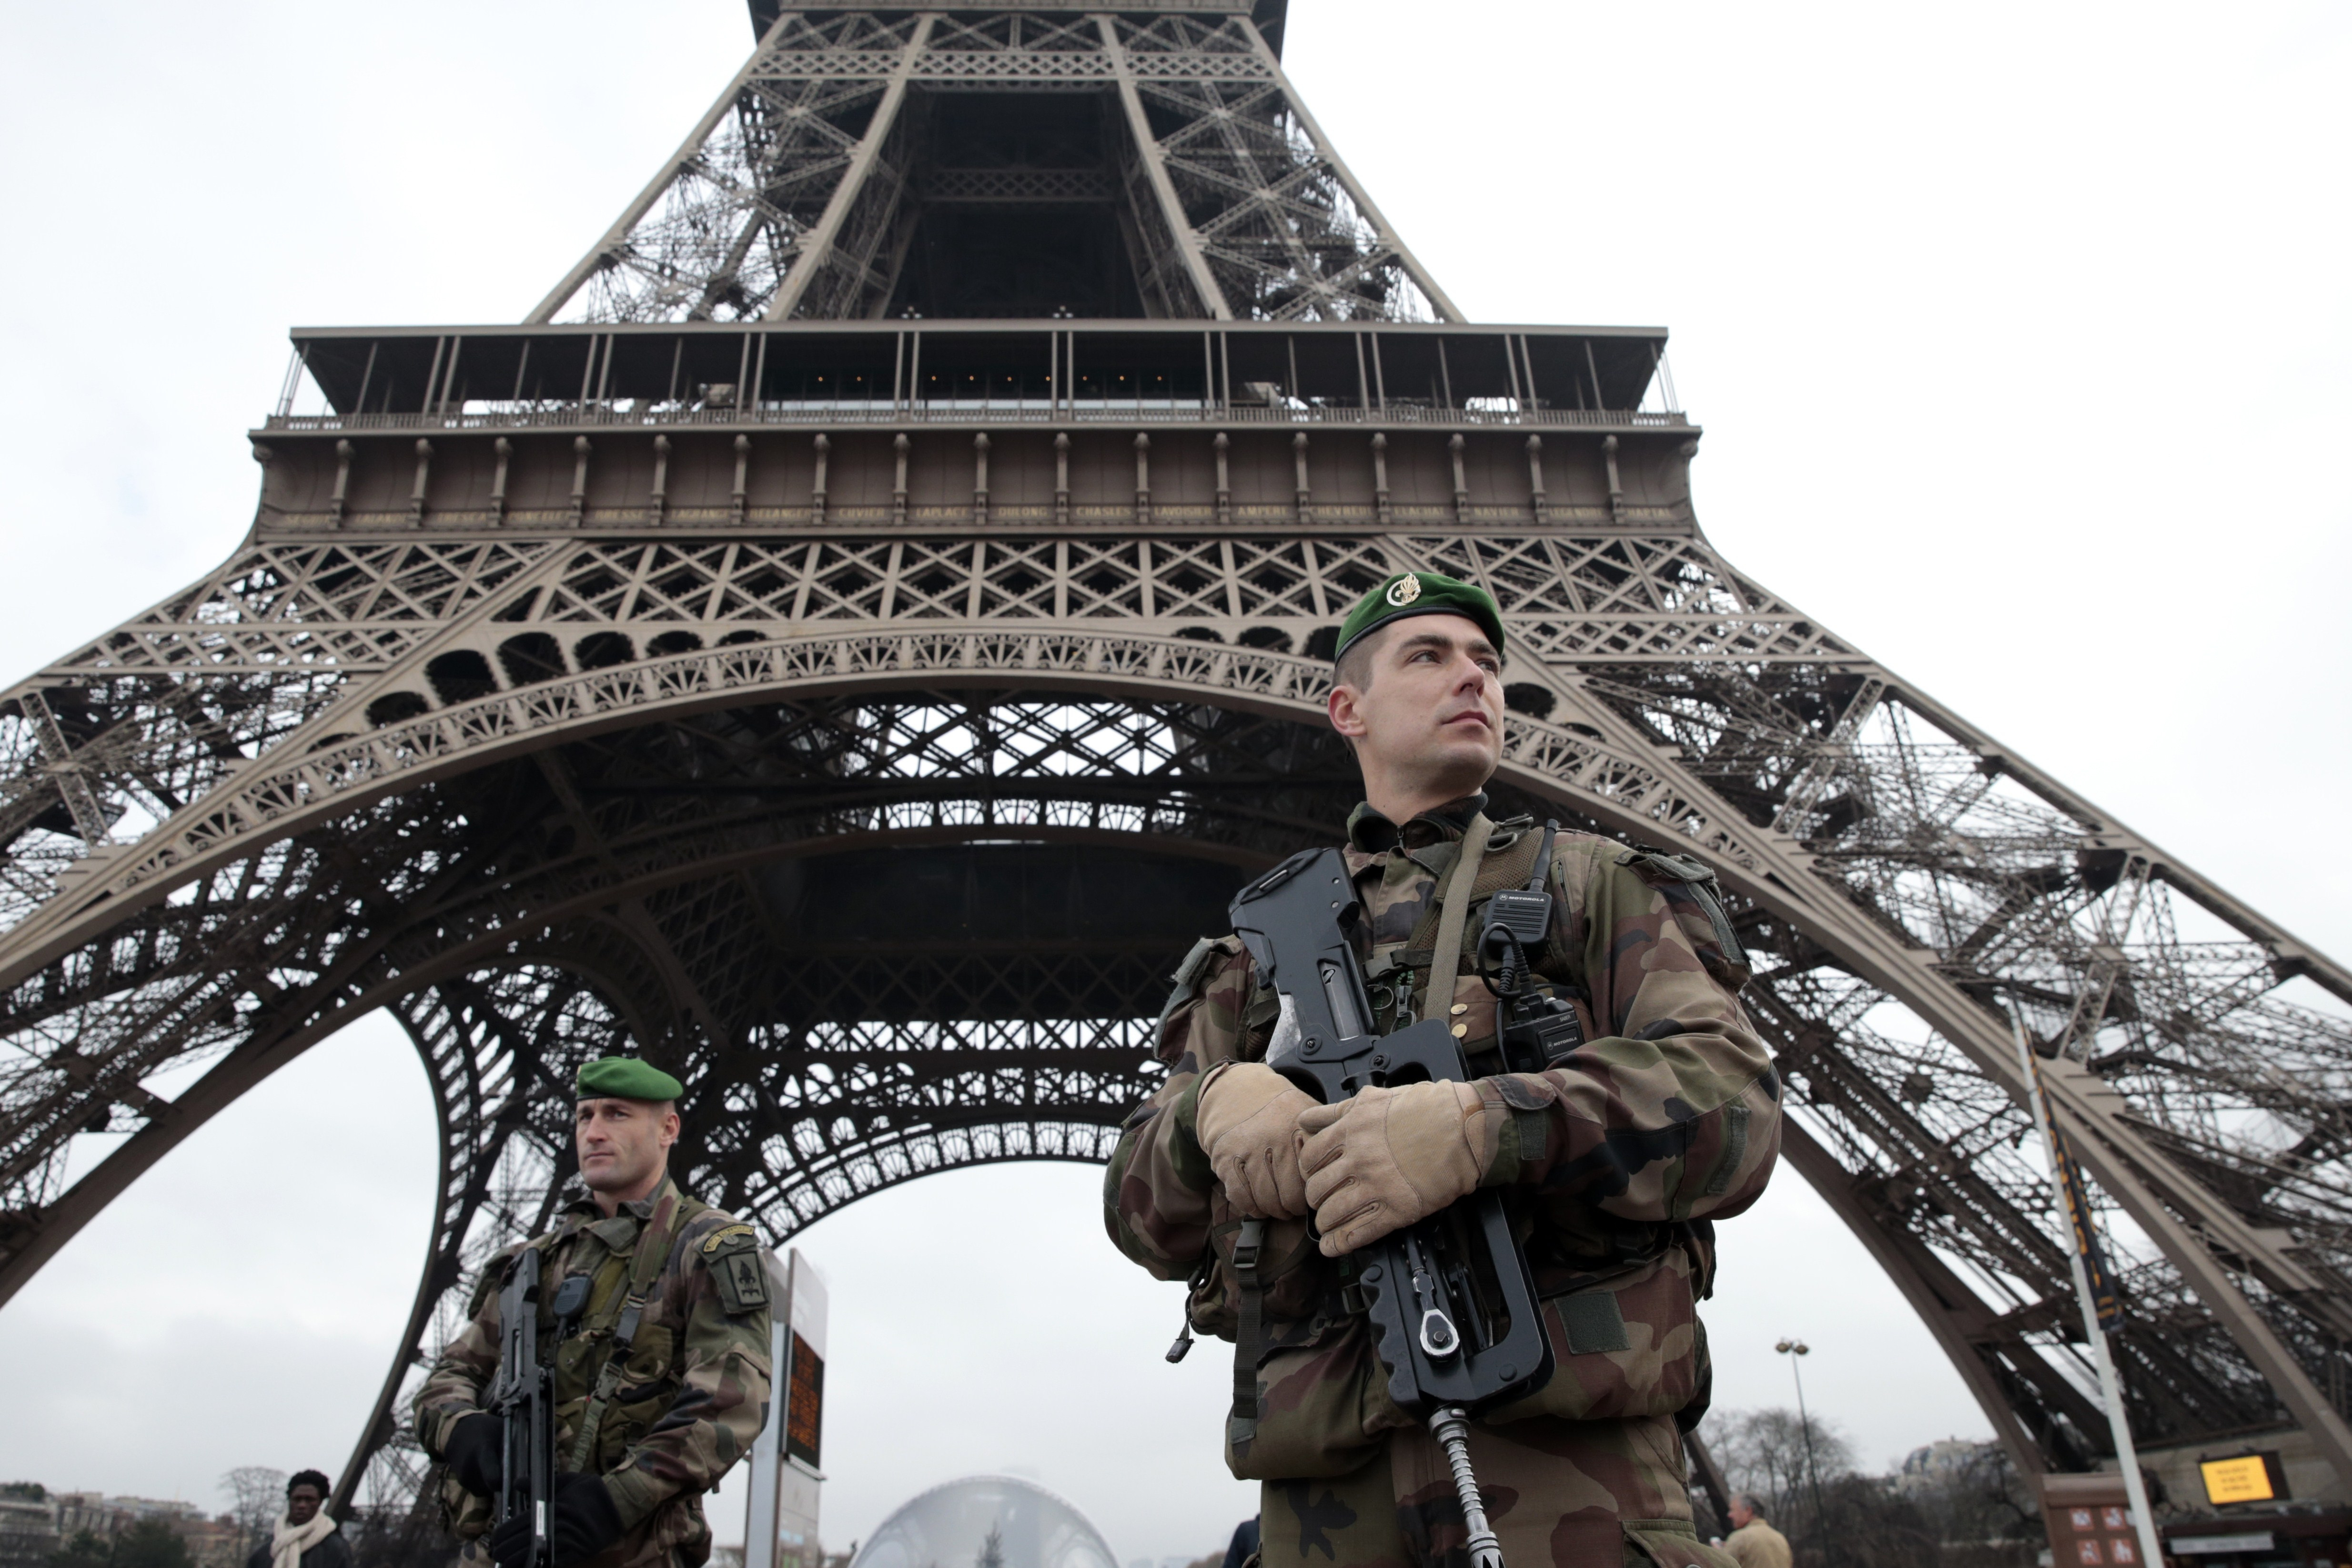 French soldiers patrol in front of the Eiffel Tower on January 7, 2015 in Paris as the capital was placed under the highest alert status after heavily armed gunmen shouting Islamist slogans stormed French satirical newspaper Charlie Hebdo and shot dead at least 12 people in the deadliest attack in France in four decades.